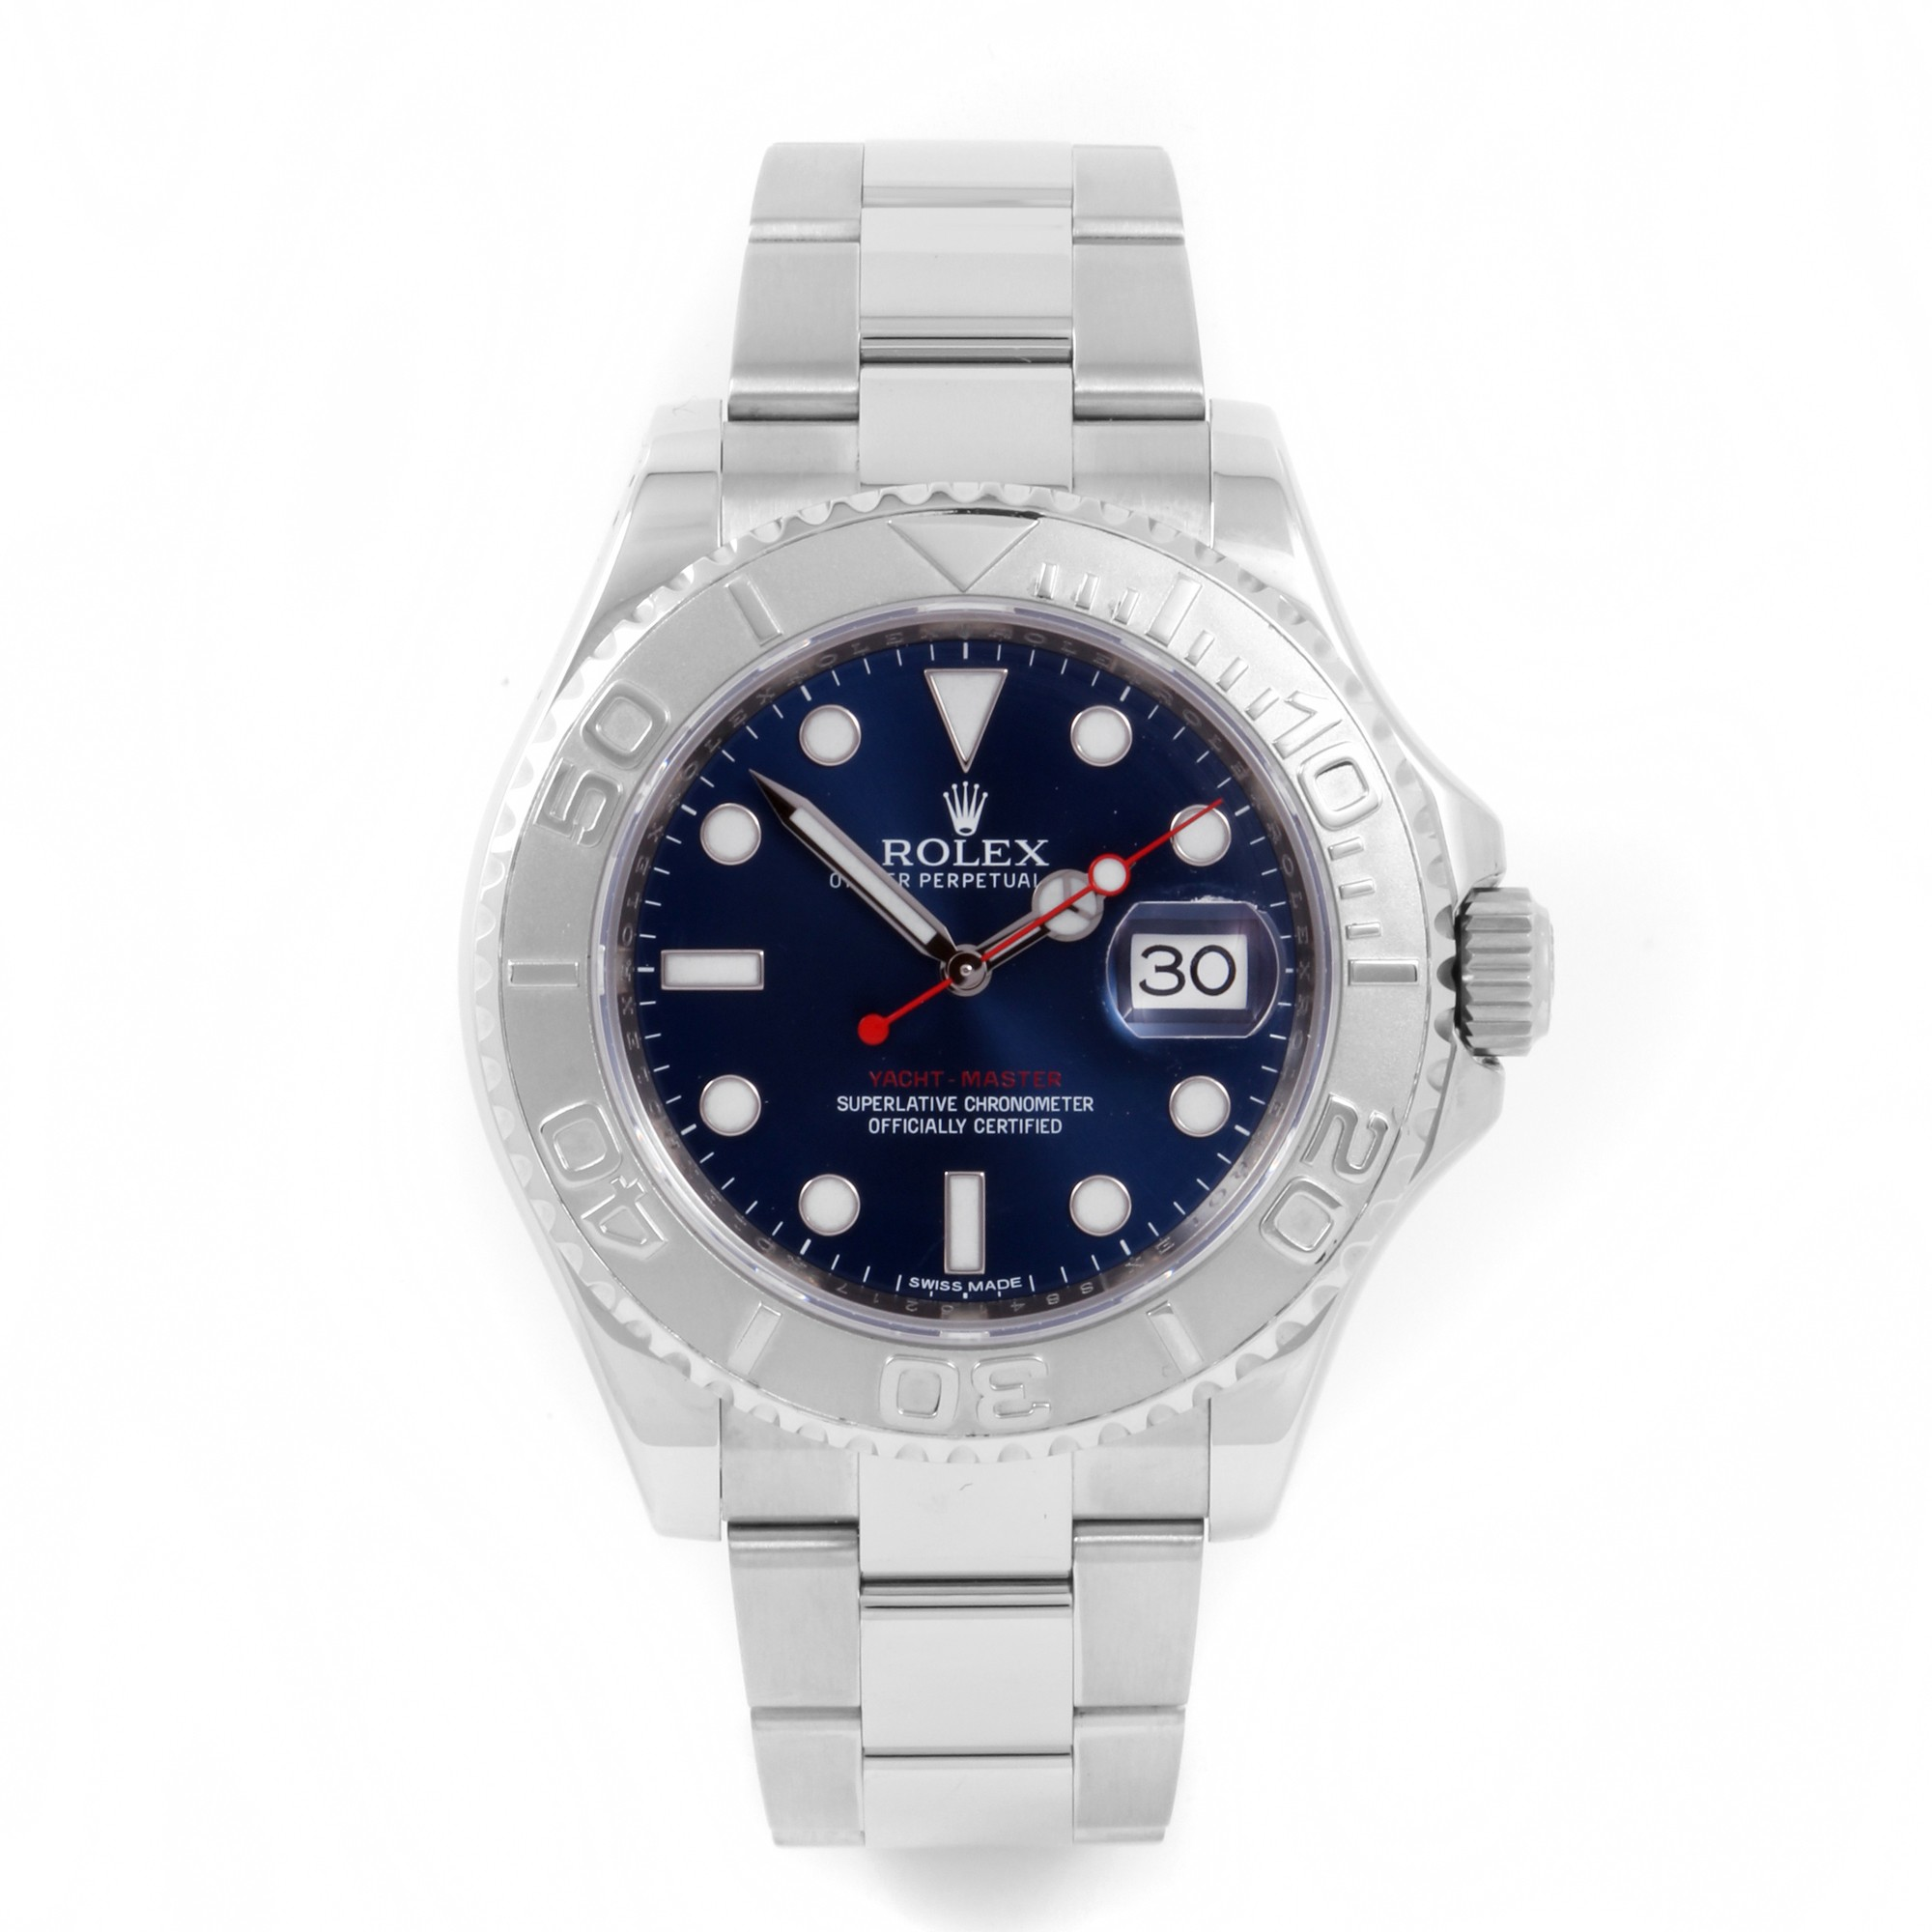 Rolex Mens Yachtmaster - 116622 Yachtmaster - Blue Dial - Platinum Bezel - Oyster Band